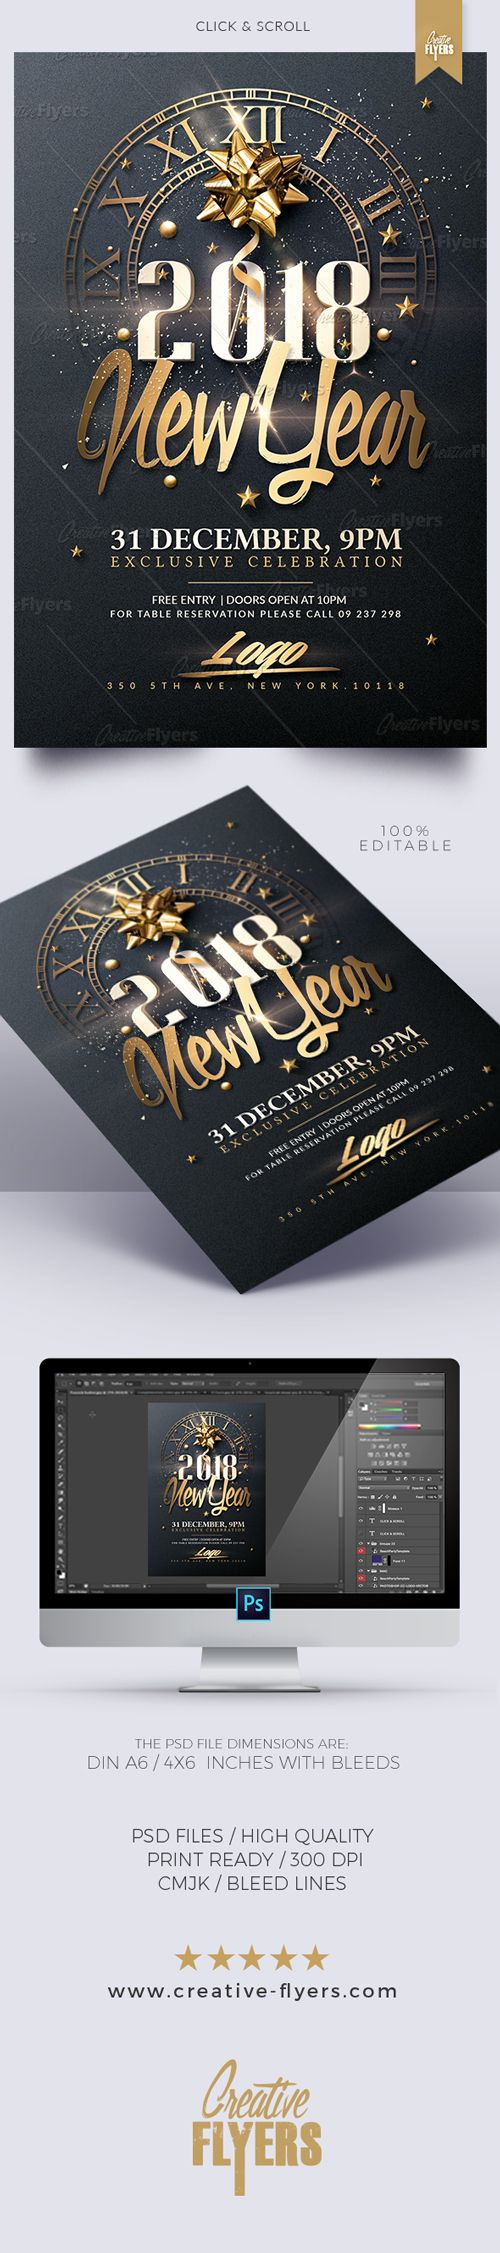 New Year Flyer Templates, Design 100% Editable, Available. Edit Psd Flyer Templates, Graphic Themes, Print Design and More ~ Creative Flyers Store. #creativeflyers #newyear #flyers #templates #nye2018